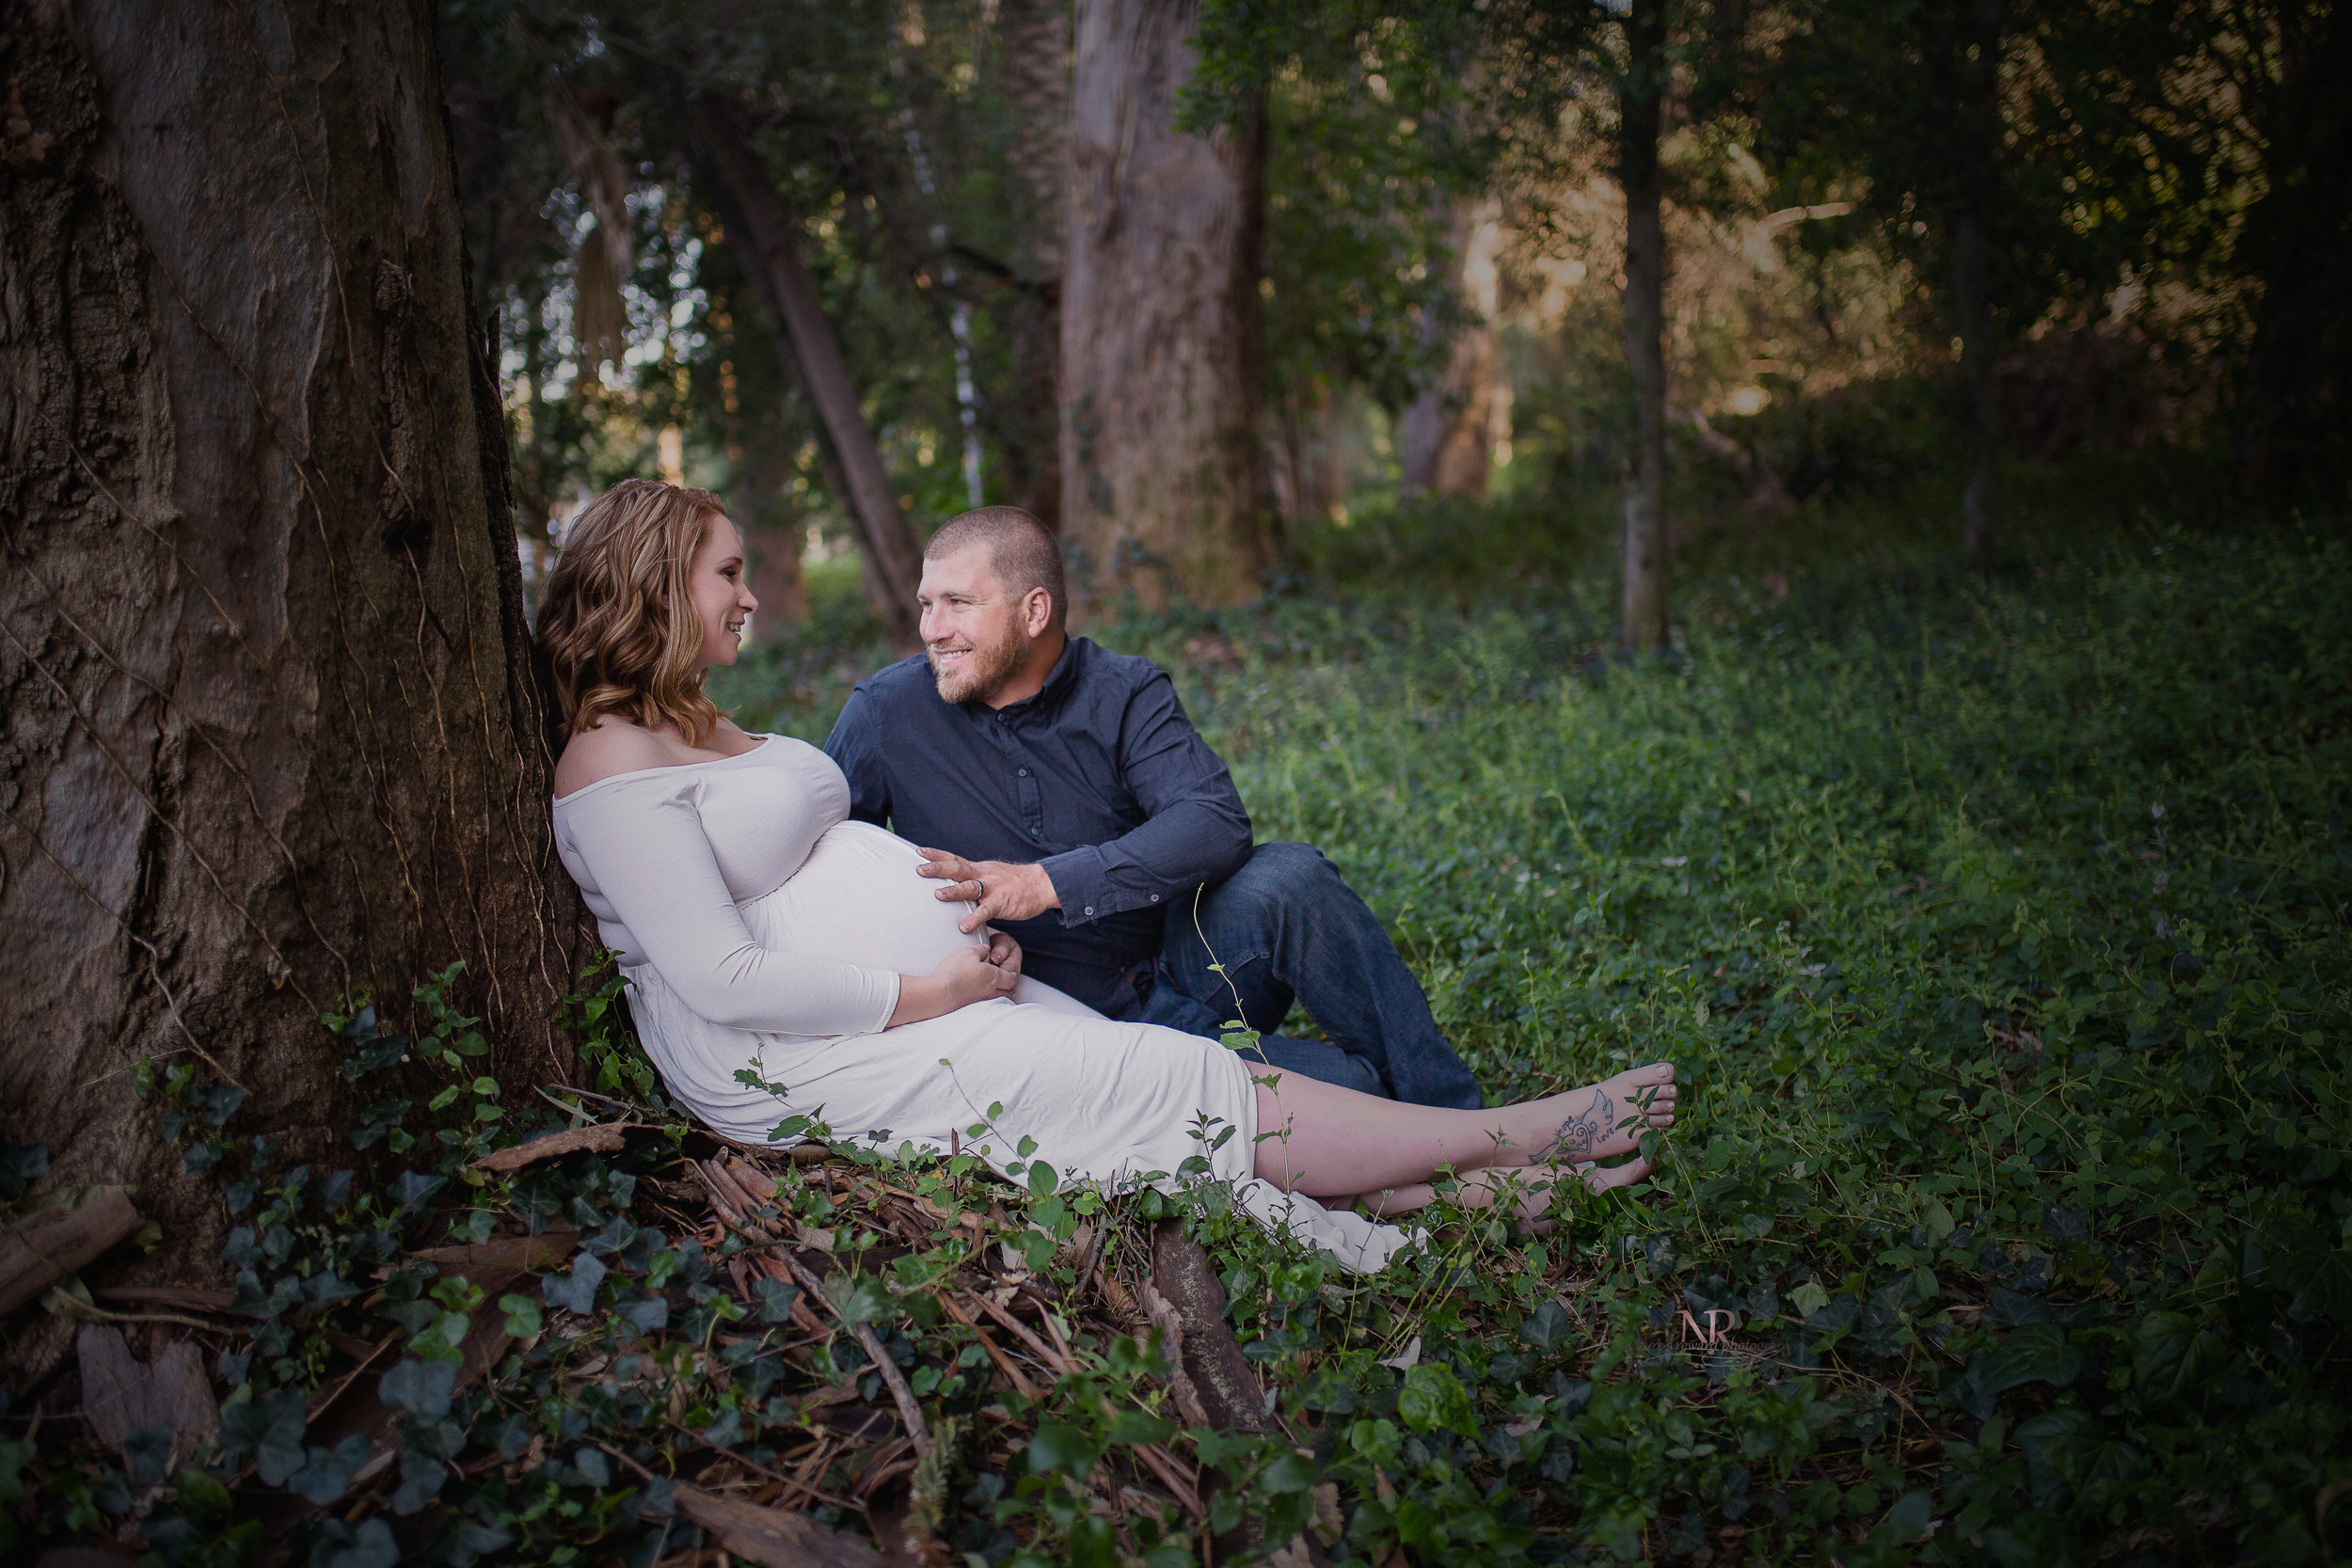 I love photography that captures love and joy and hope.